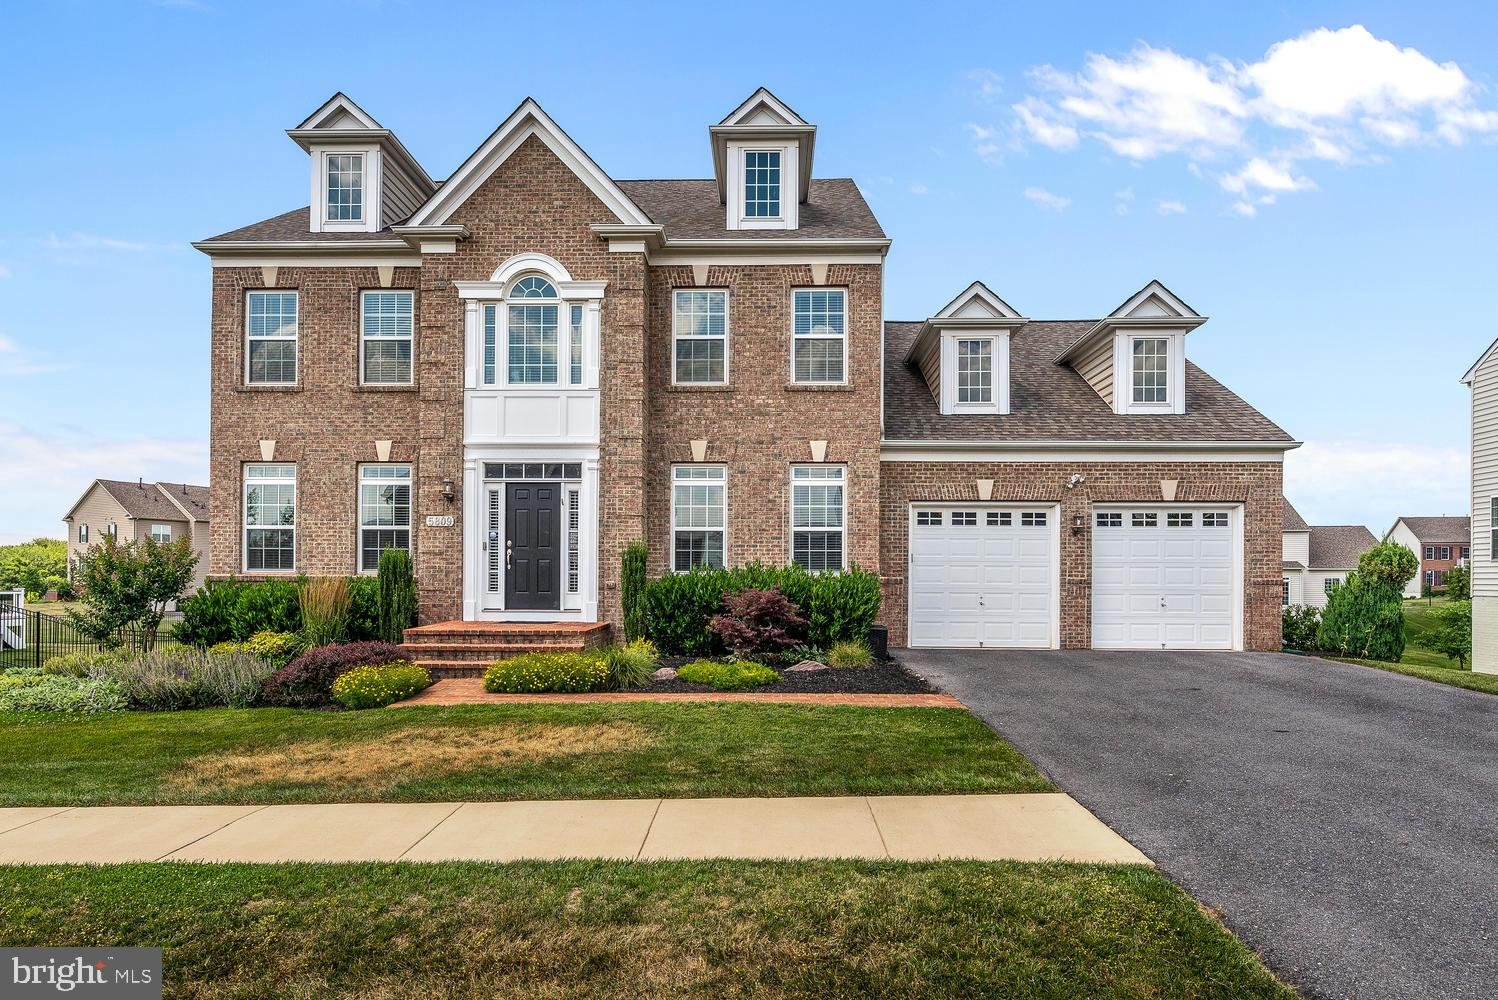 5809 COPPELIA DRIVE, ROCKVILLE, MD 20855